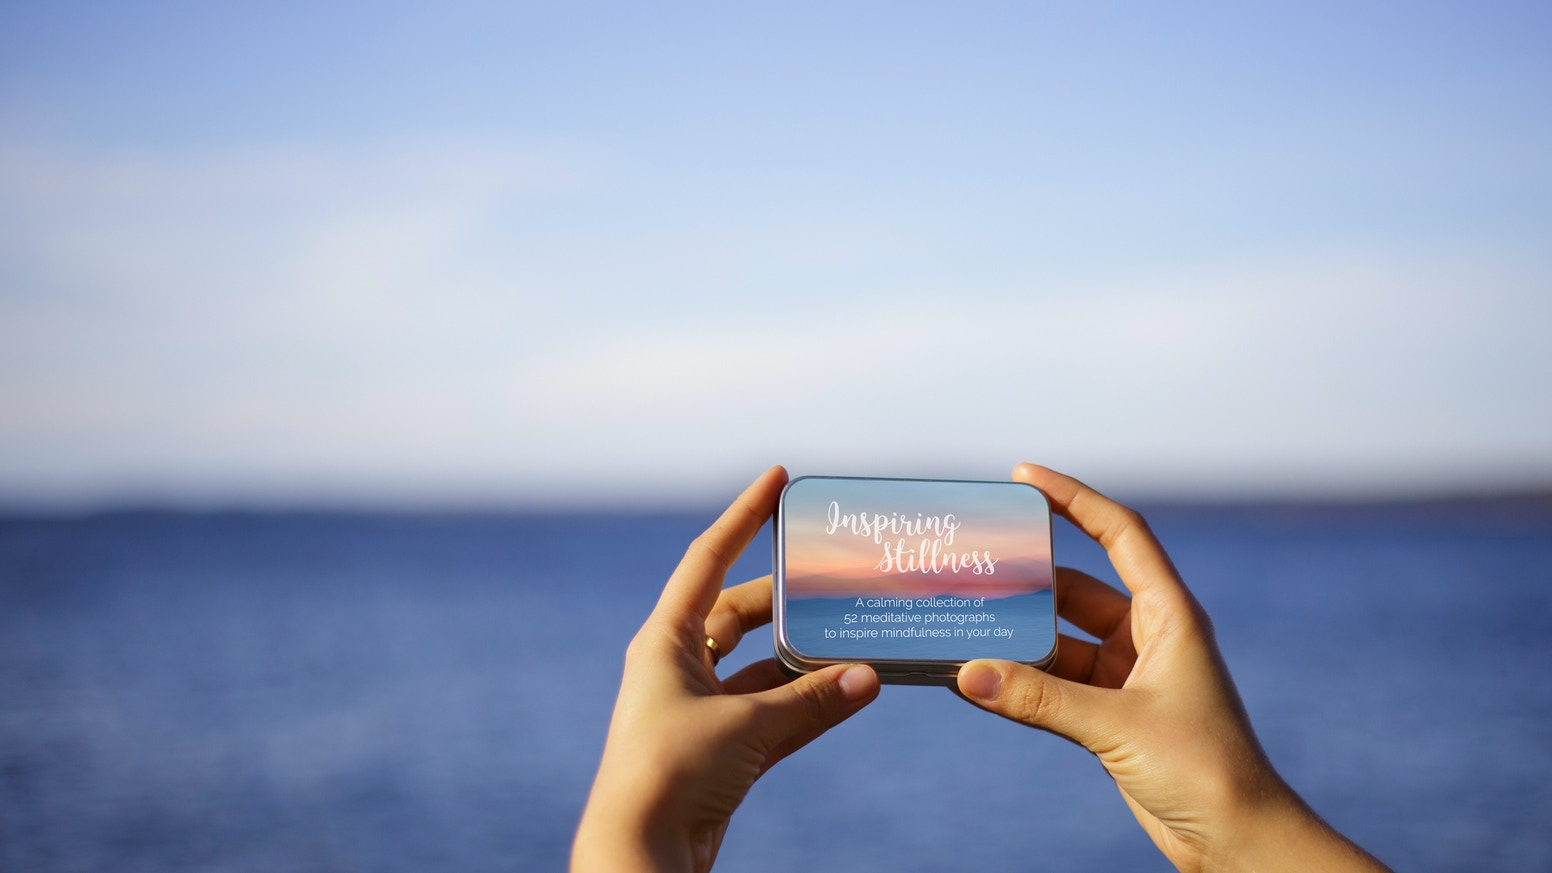 A handheld collection of 52 meditative photographs. Cards foster daily reflection & add beauty, serenity, and inspiration to your day.